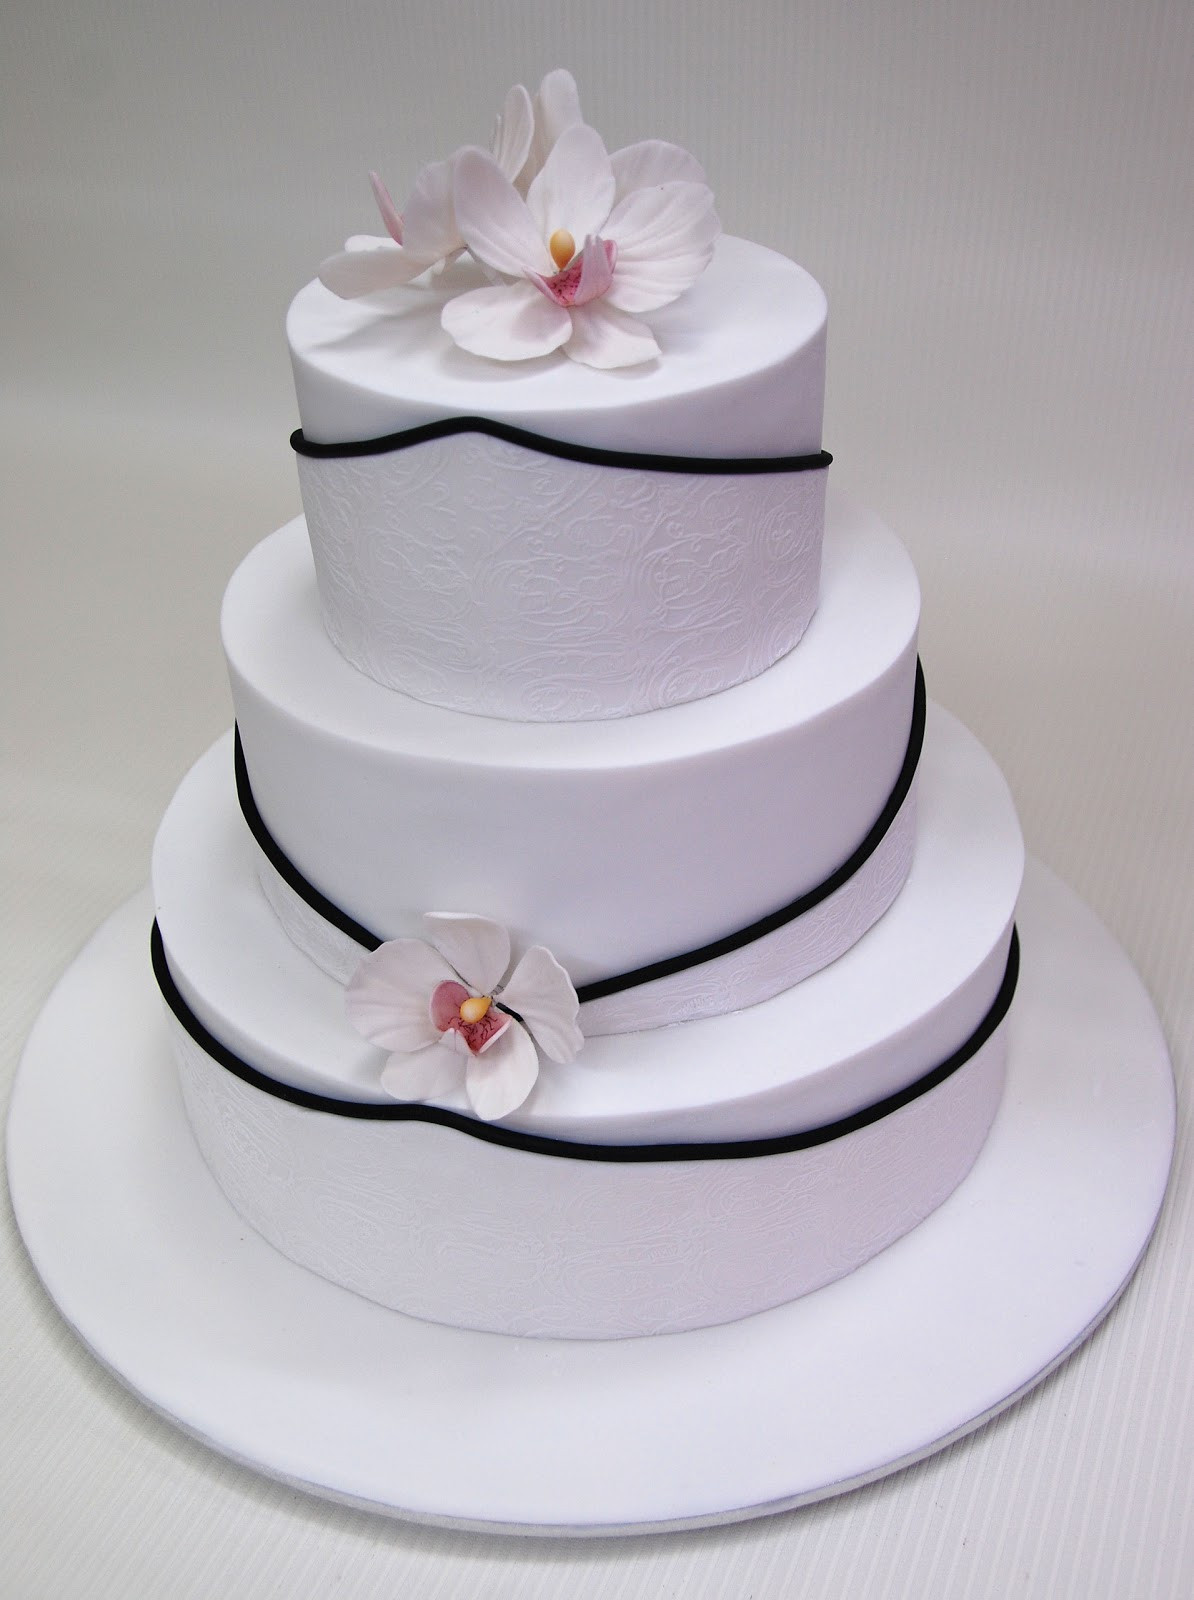 Wedding Cakes Three Tiers  Little Robin 3 Tier Wedding Cake with Orchids